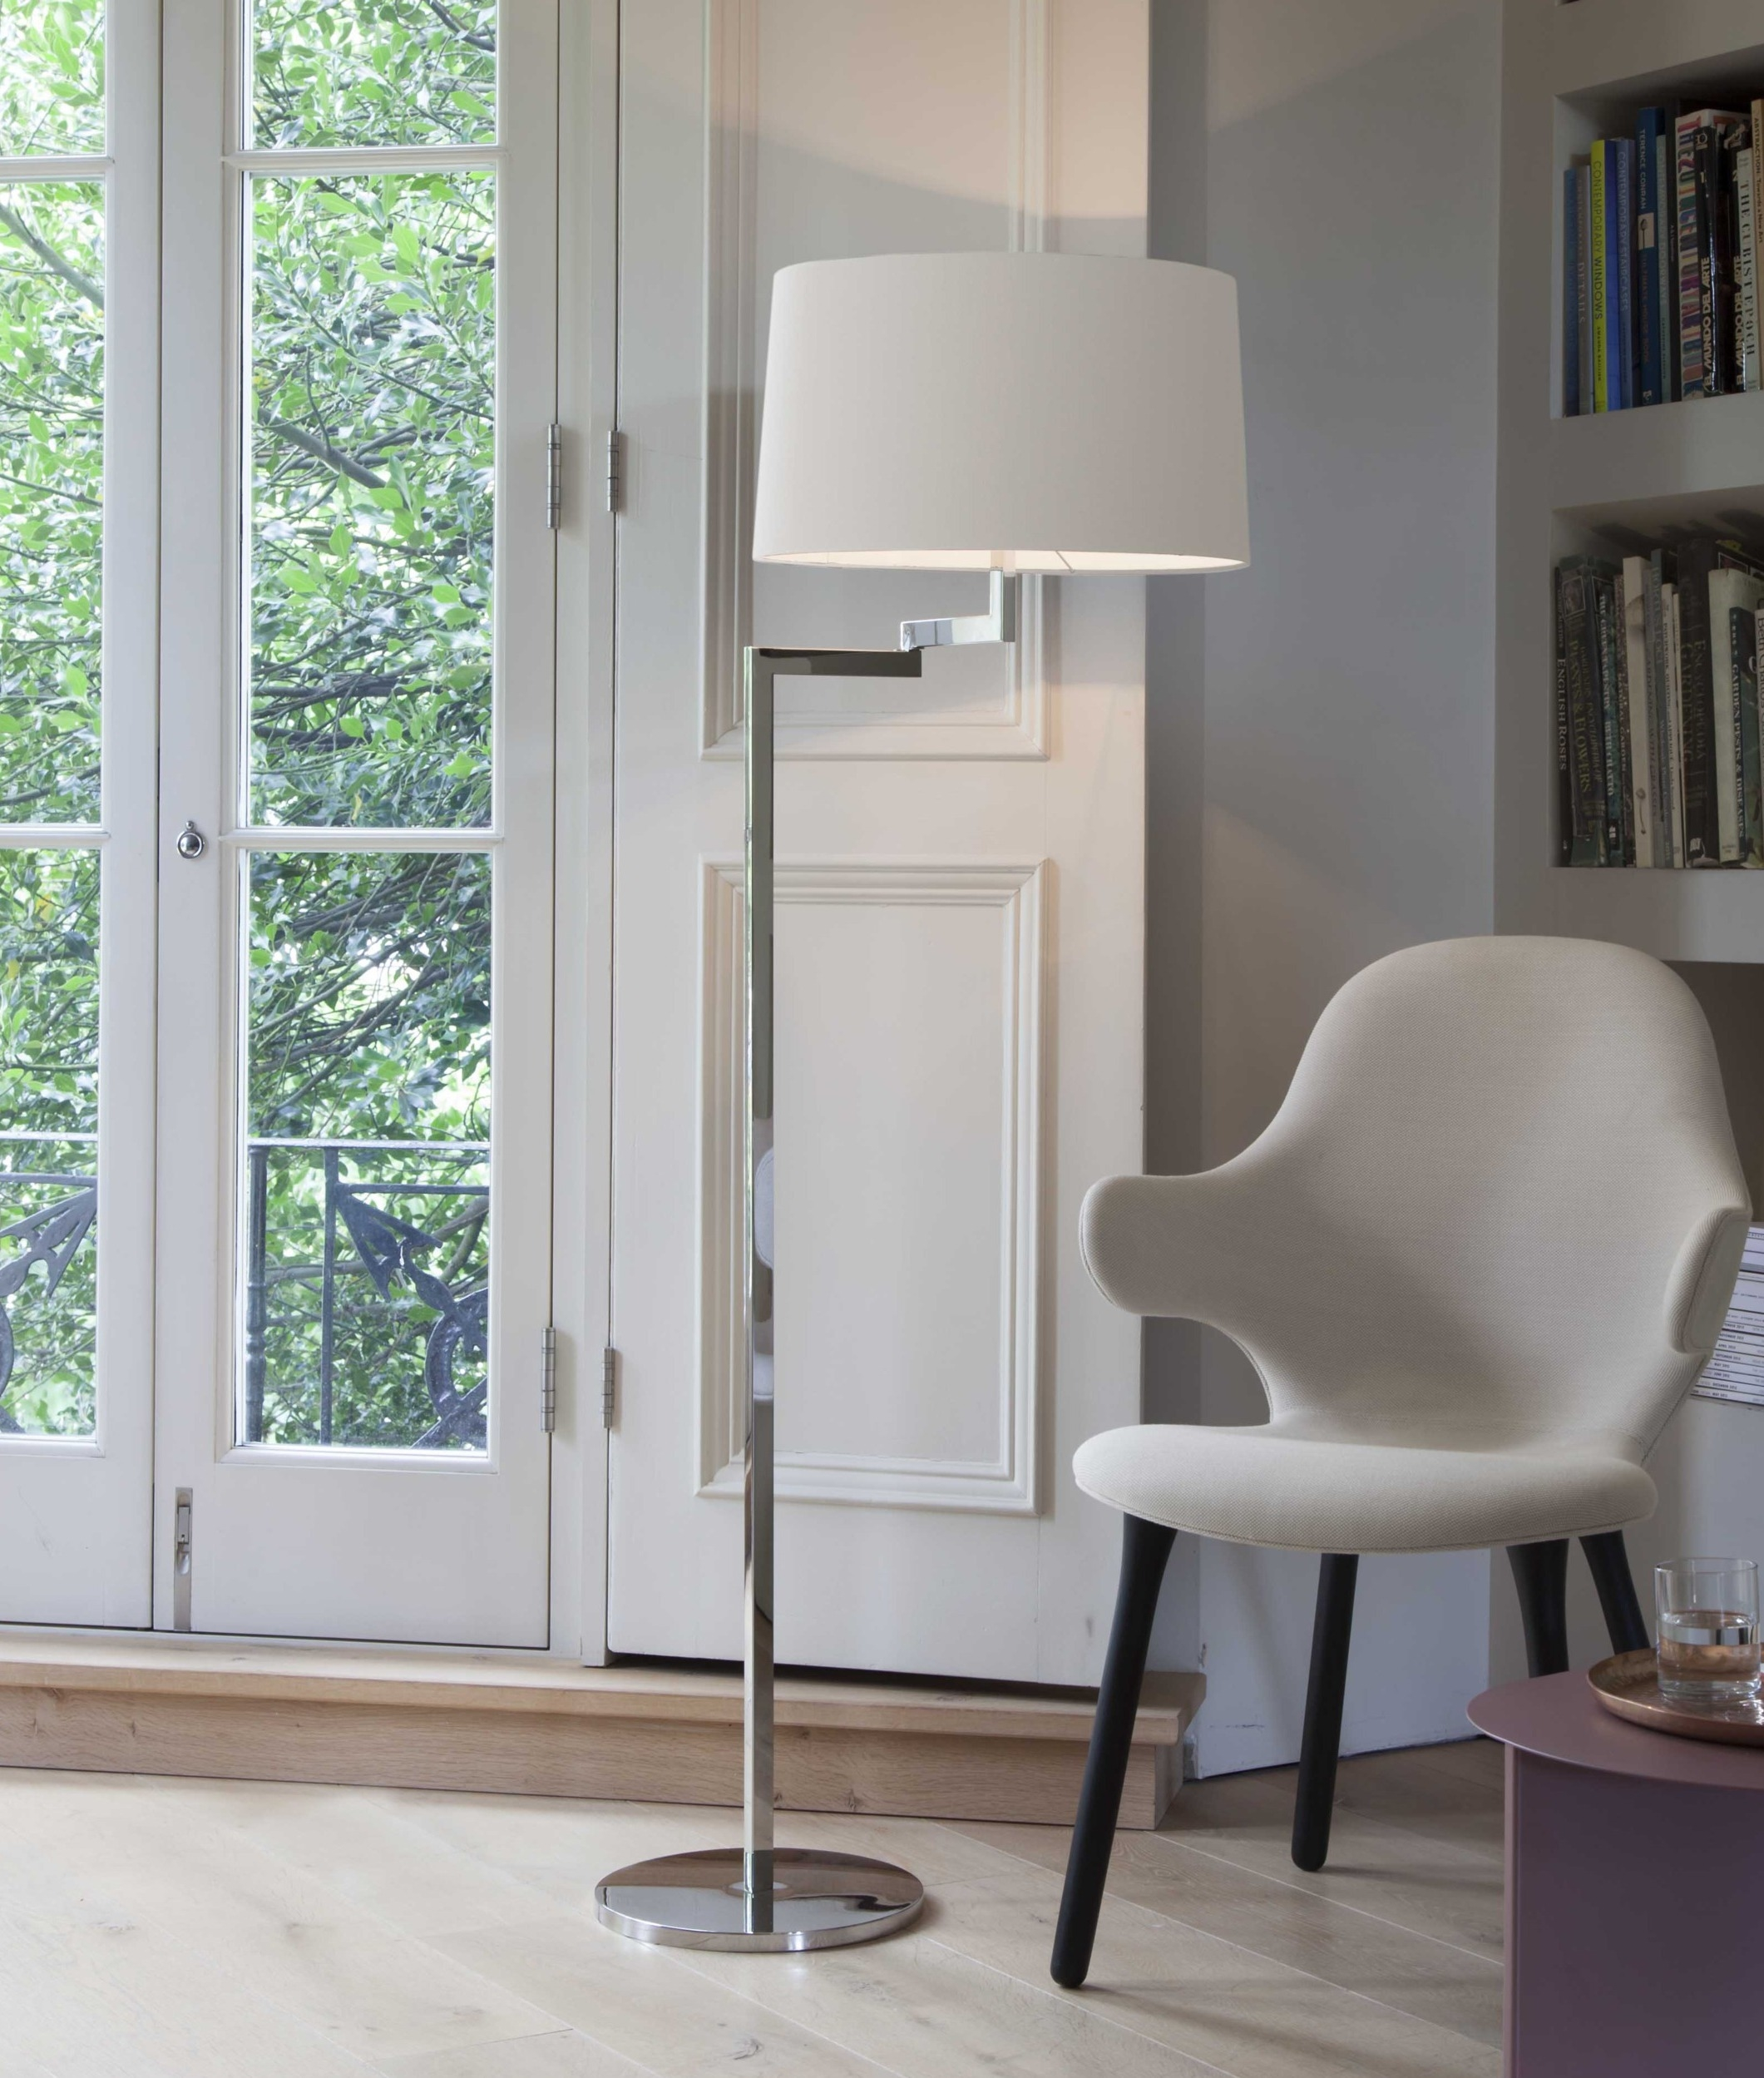 Swing Arm Floor Lamp With Choice Of Fabric Shades